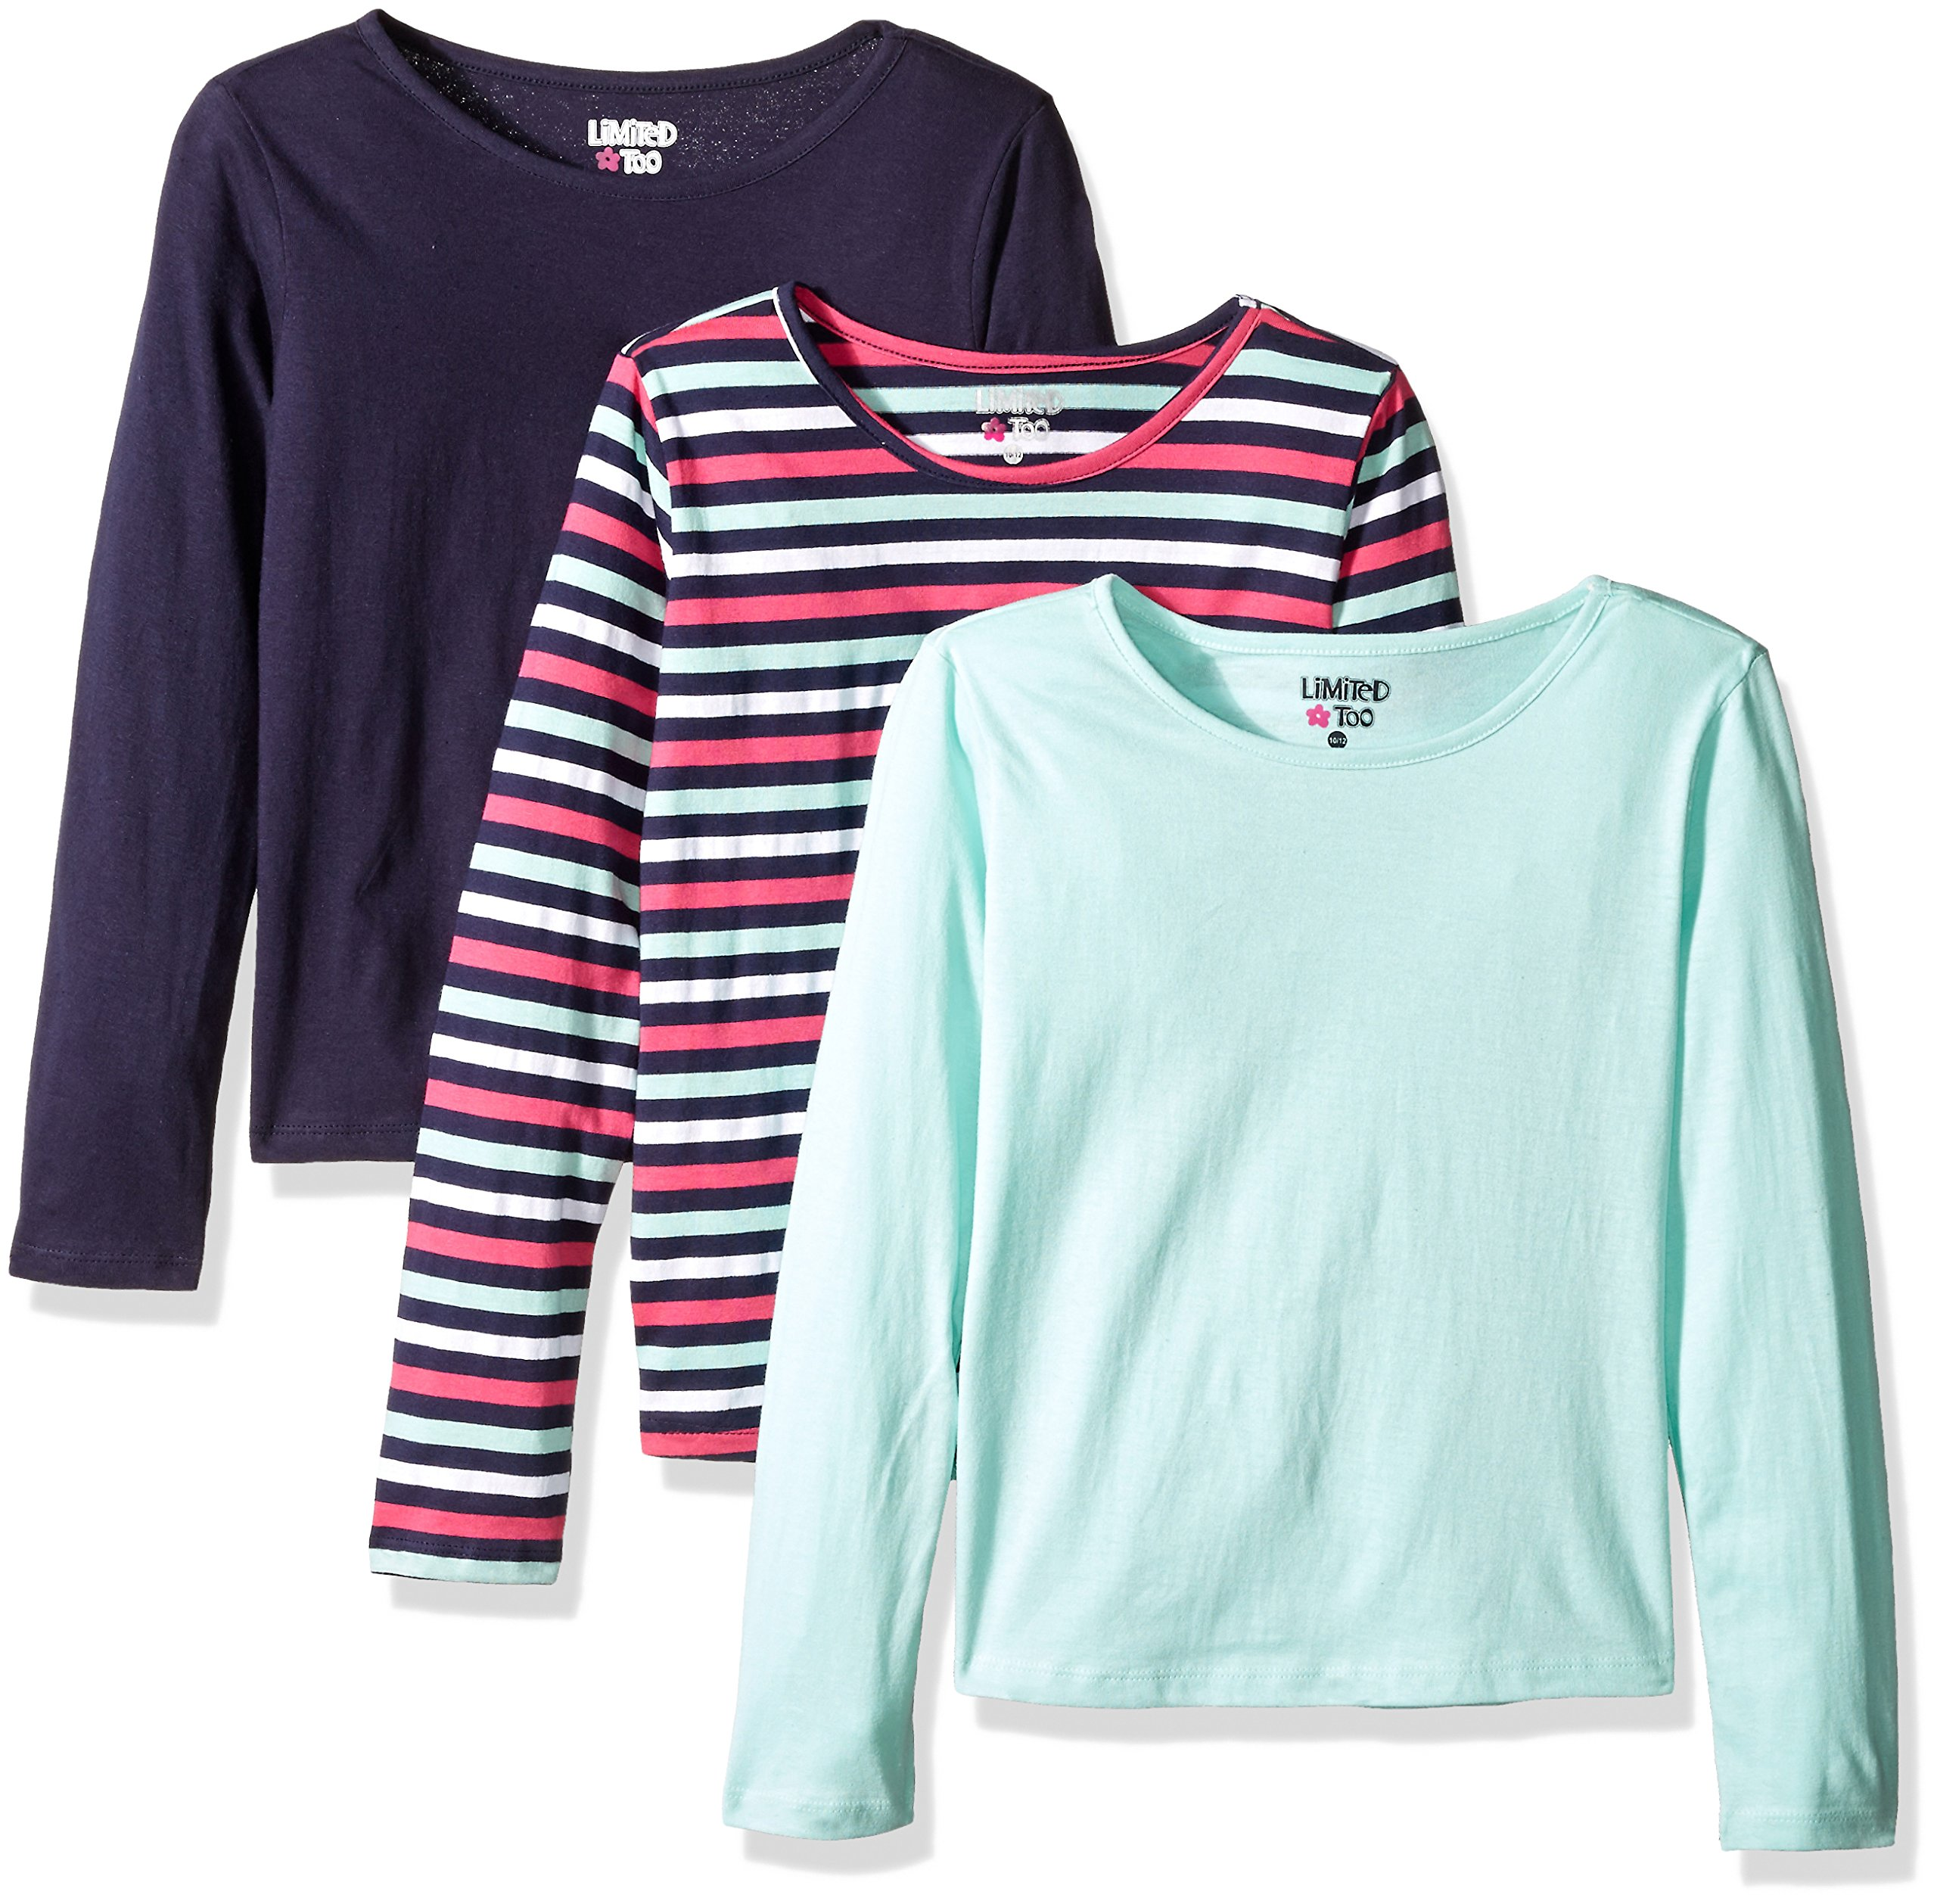 Limited Too Big Girls' 3 Pack: Long Sleeve Tee Shirts, Peacoat Stripe/Mint Frost/Peacoat, 10/12